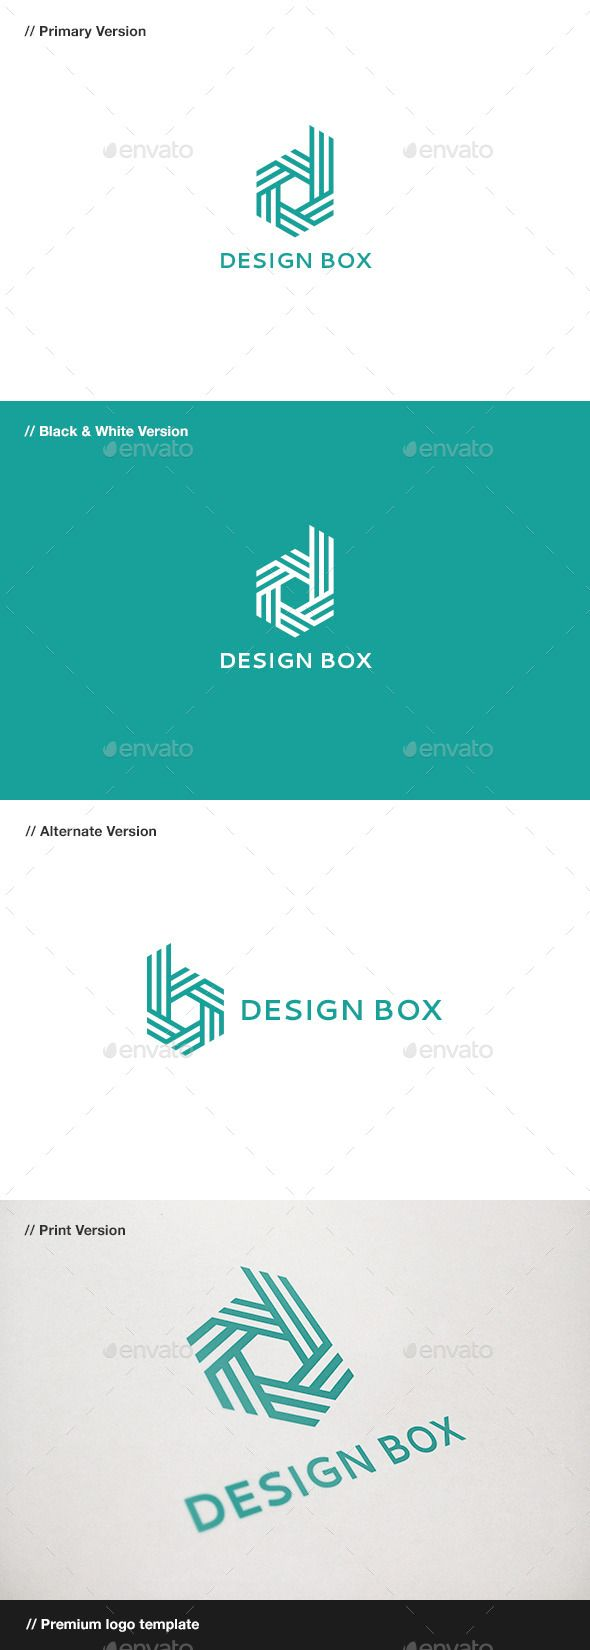 Design Box Letter D & B - Logo Design Template Vector #logotype Download it here: http://graphicriver.net/item/design-box-letter-d-b-logo/10816338?s_rank=1073?ref=nesto